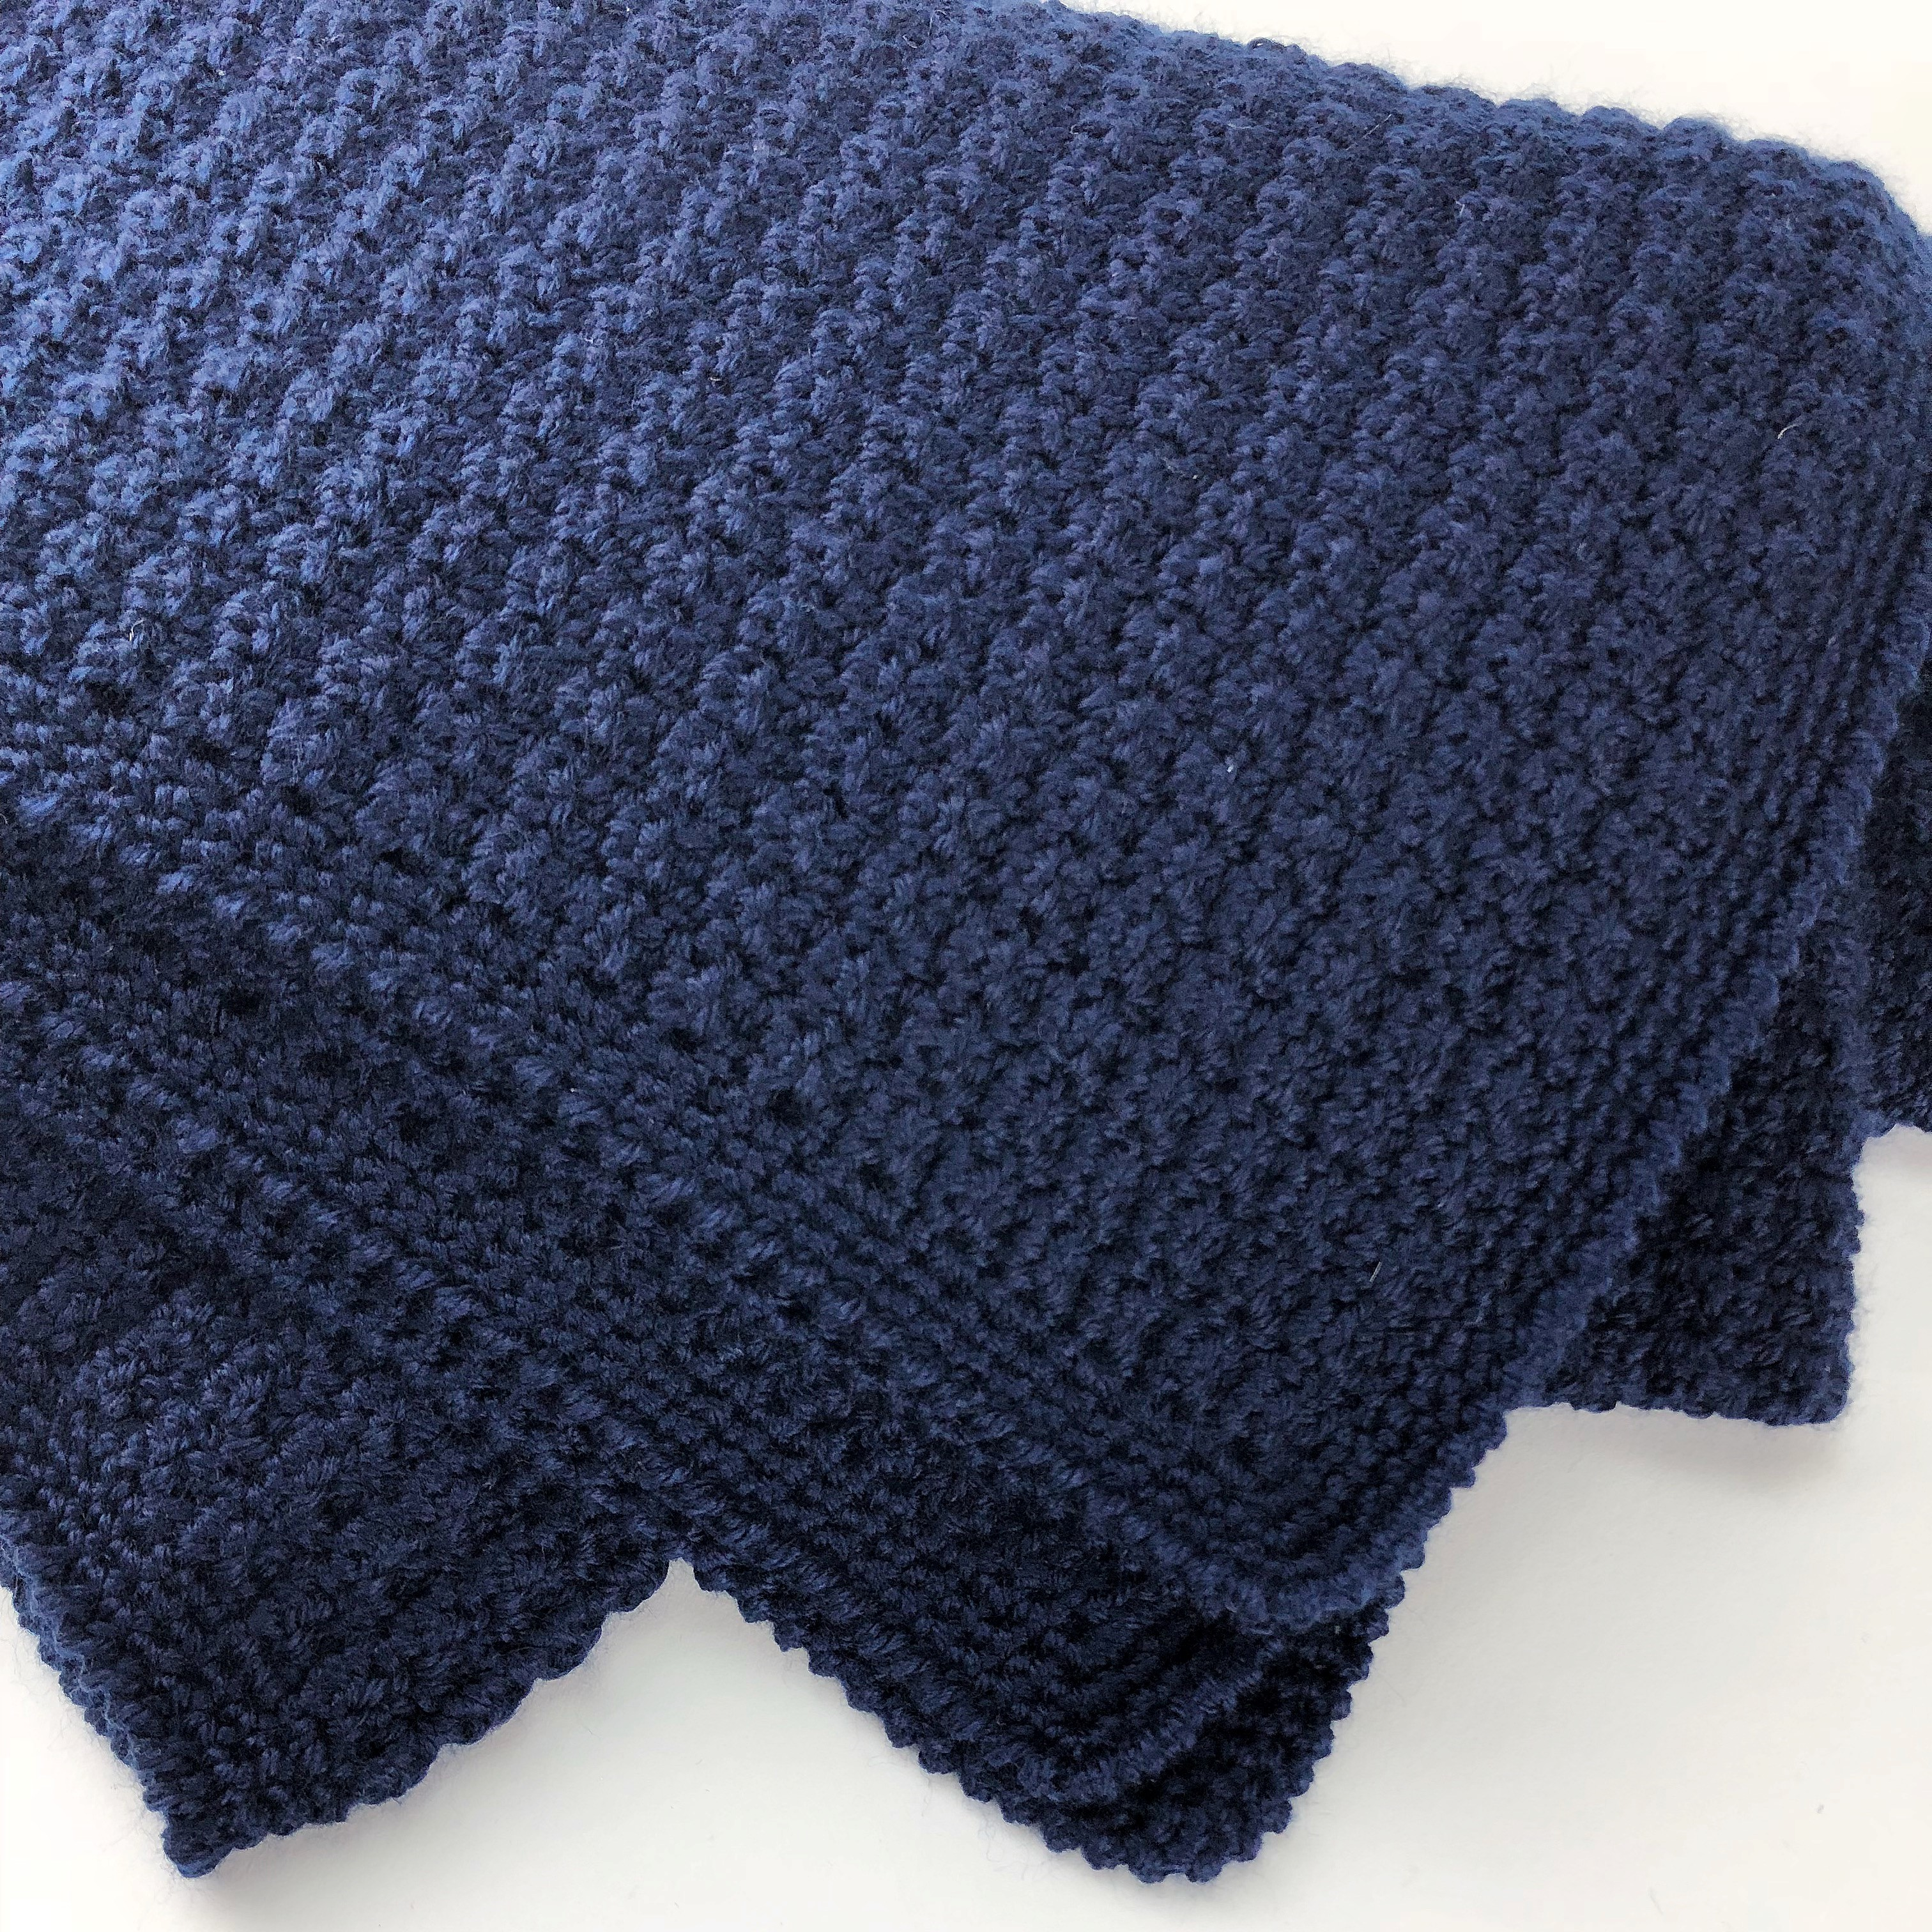 Handmade Crochet Throw Navy Artigaprest